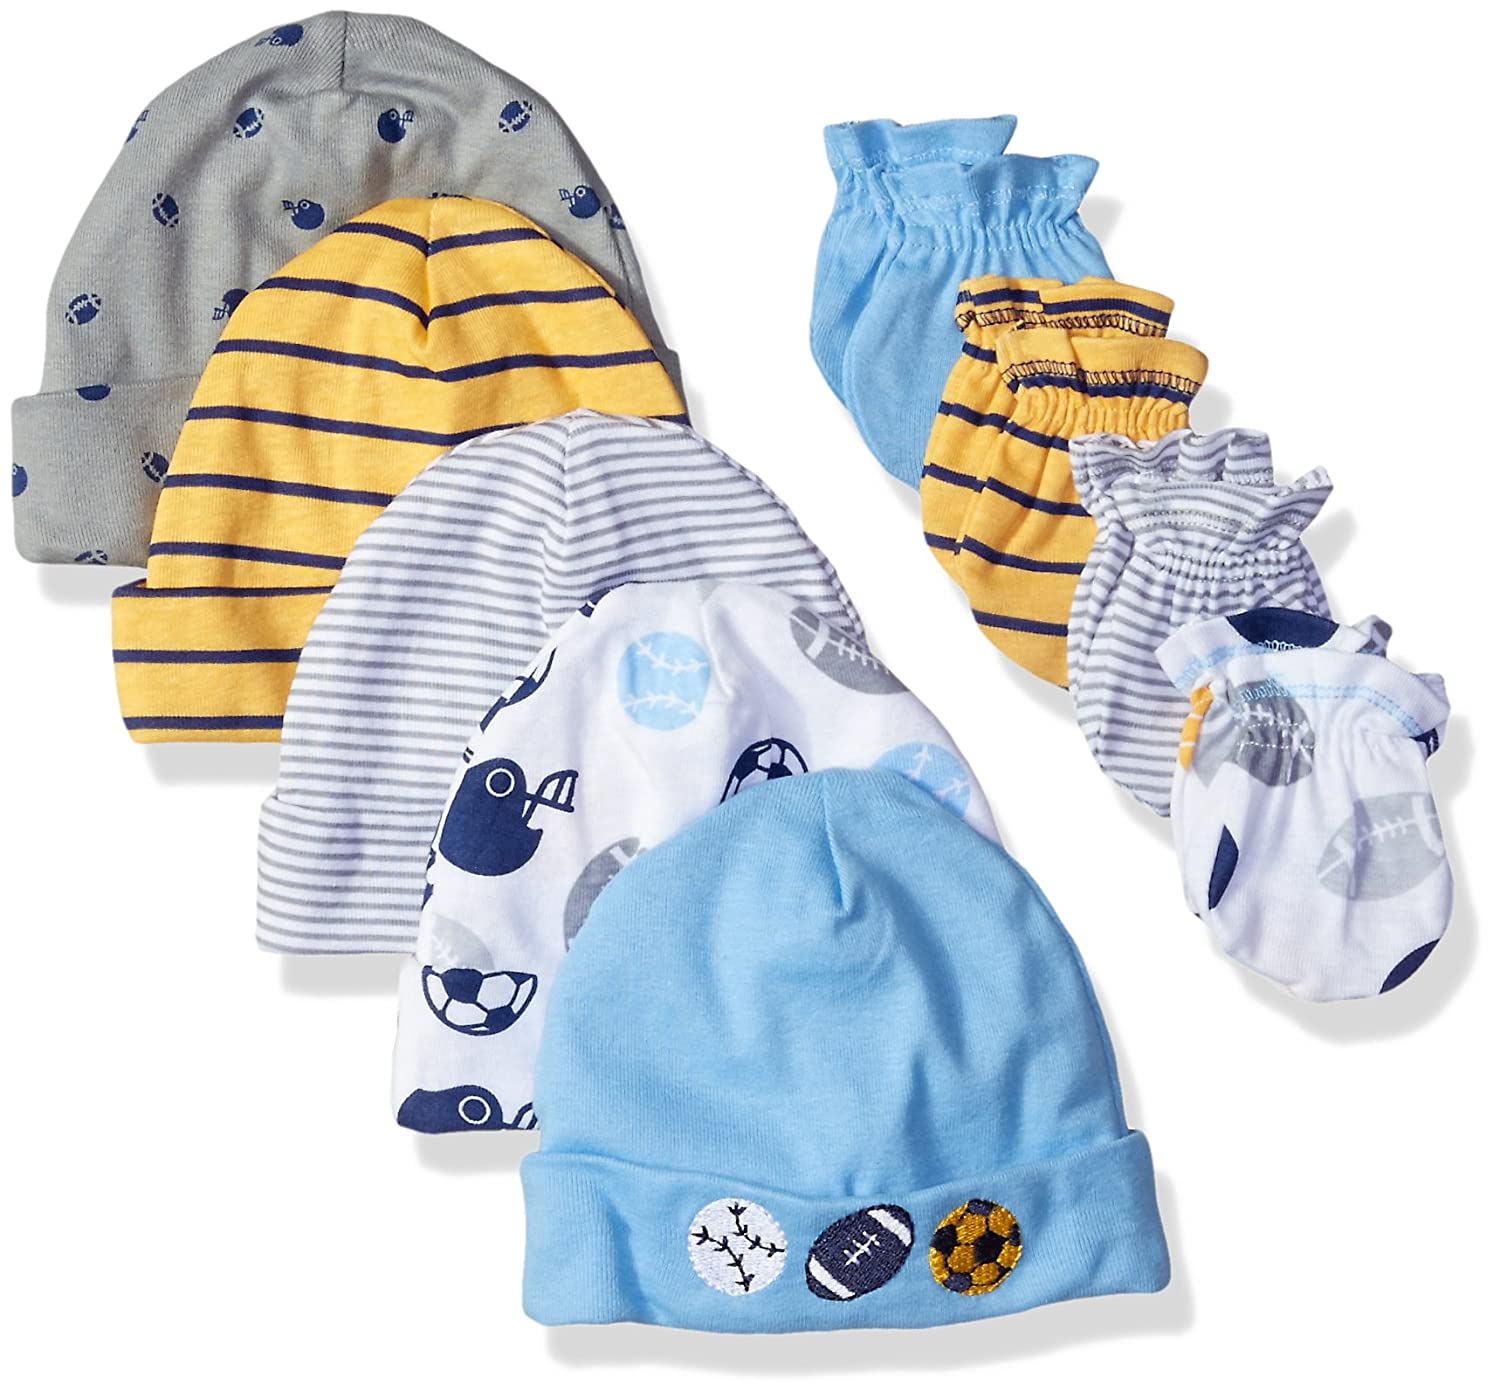 Gerber Baby Pack of 5 Caps & 4 Mittens Multi-Sport Newborn Gerber Children's Apparel 95311916AB17AST